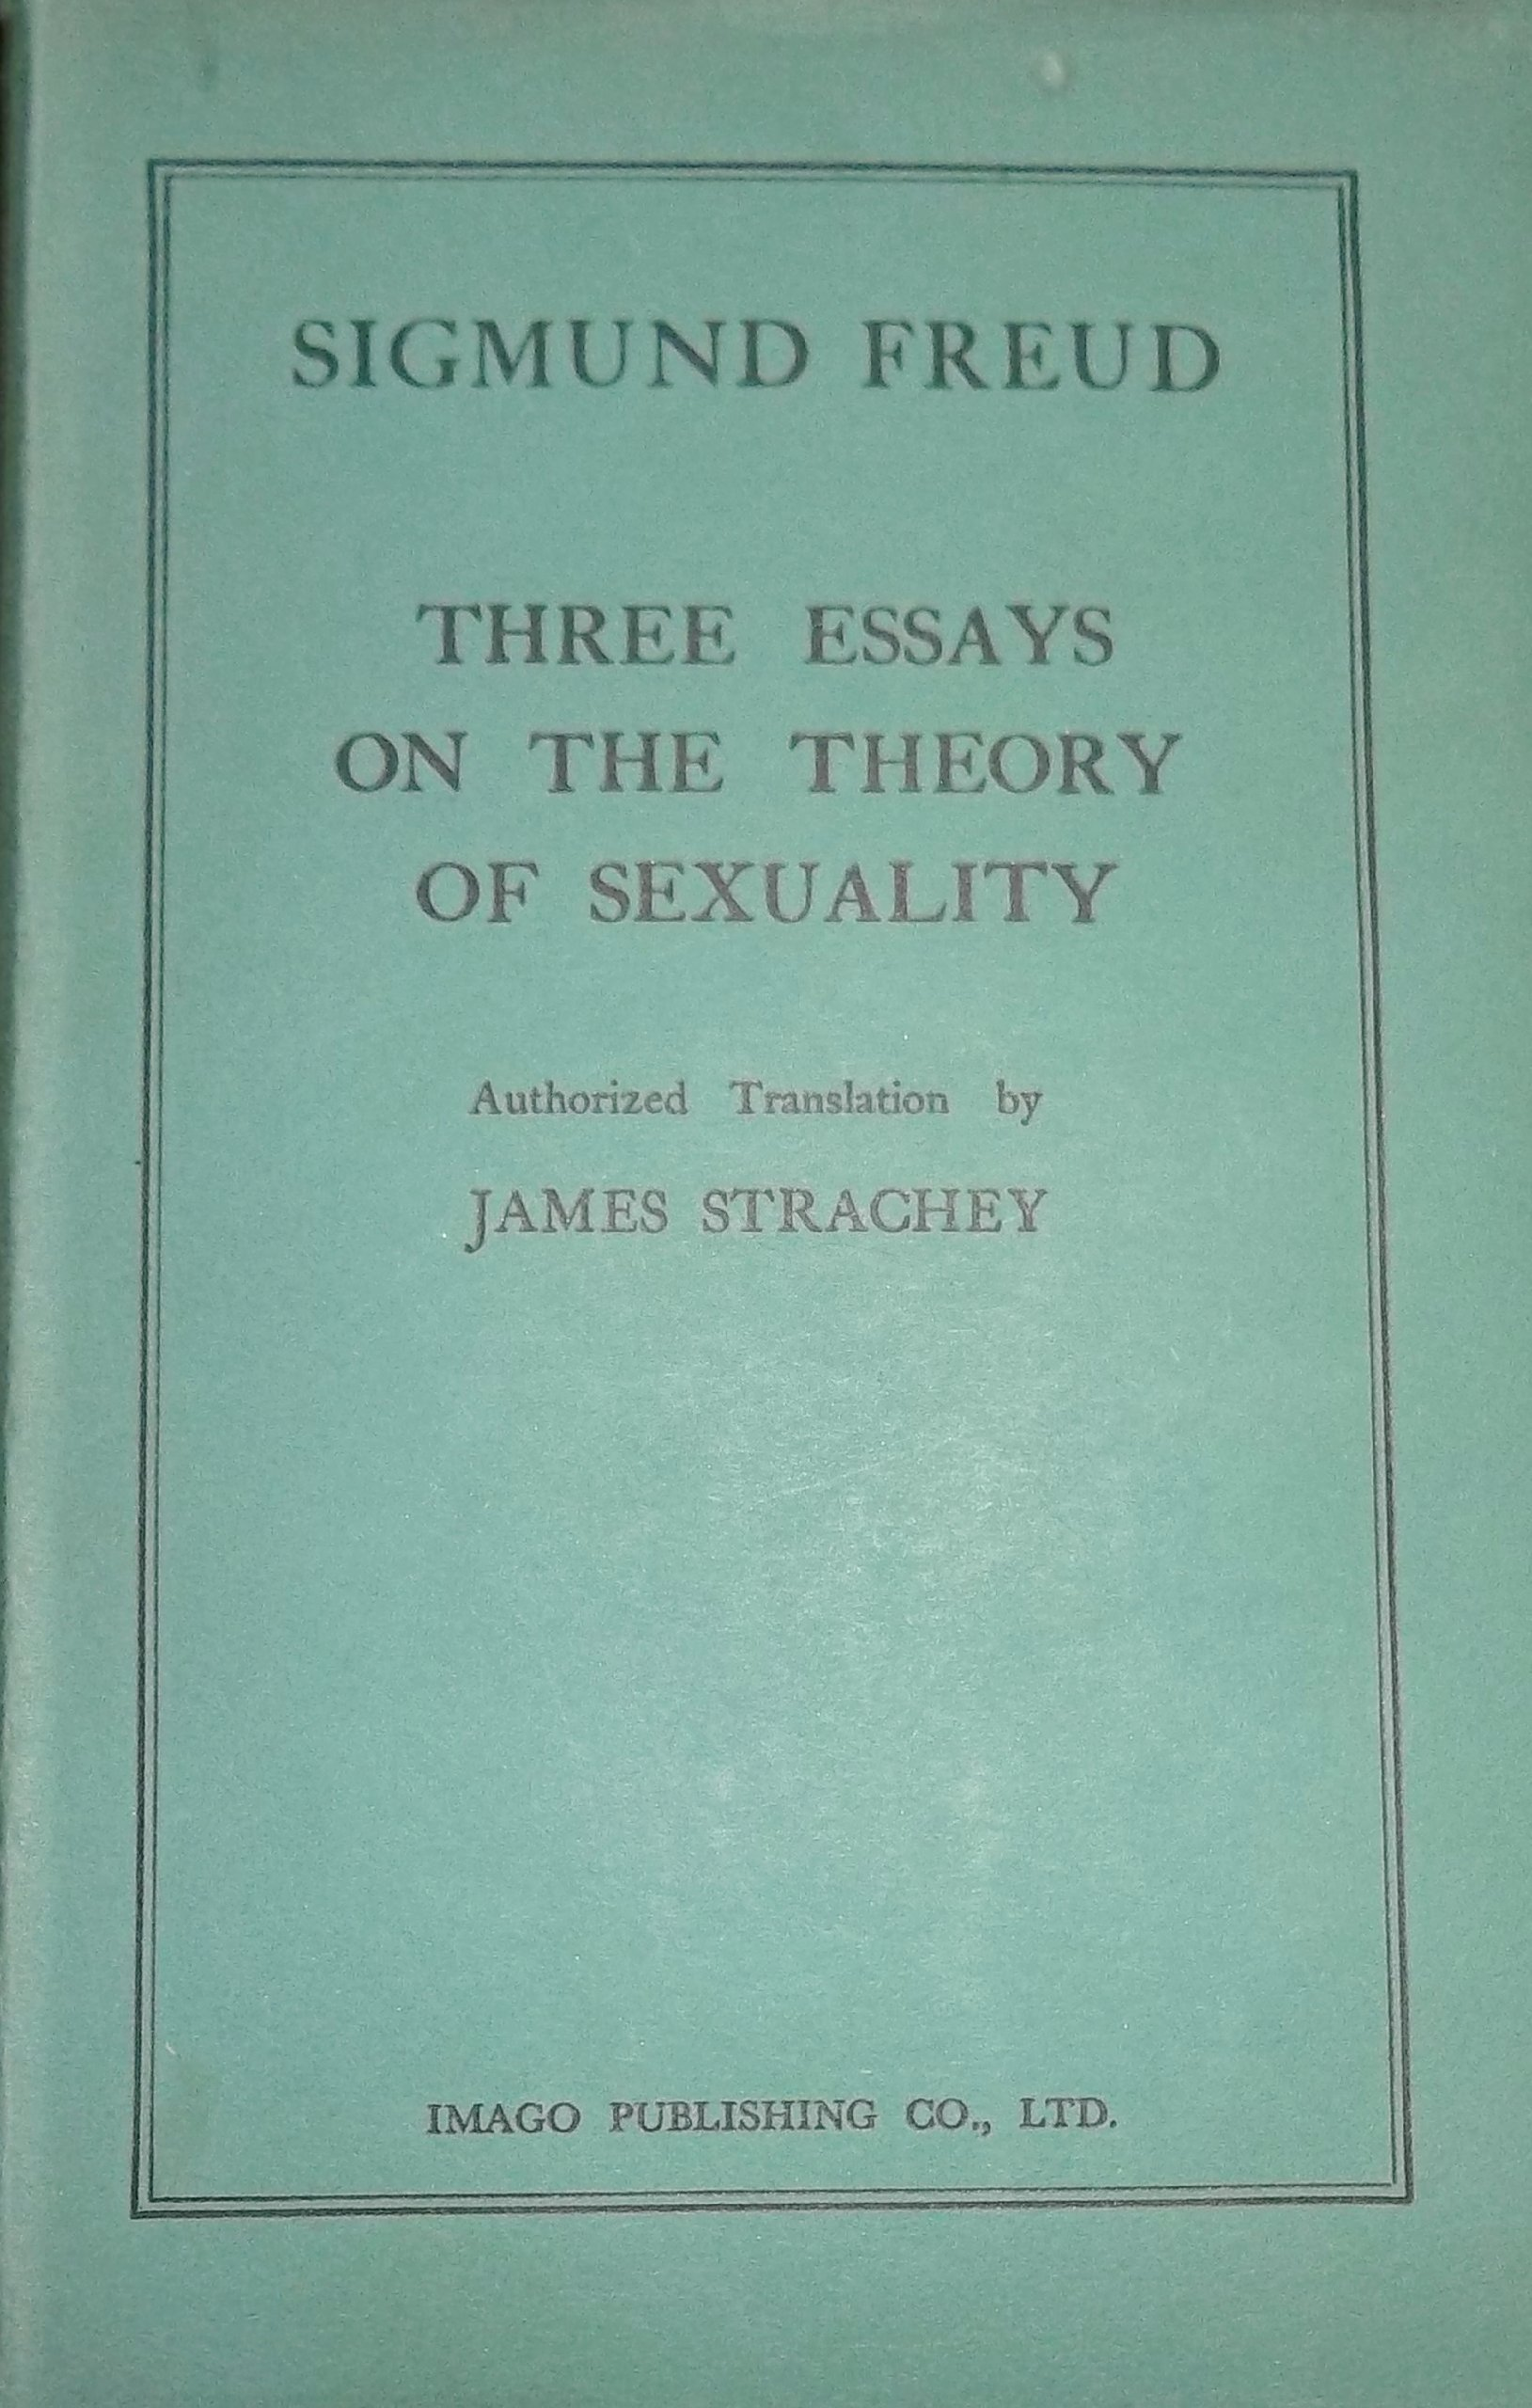 sigmund freud three essays on the theory of sexuality summary Sigmund freud - three essays on the theory of sexuality - summary sigmund  freud is famous and infamous for introducing a sexuality based.